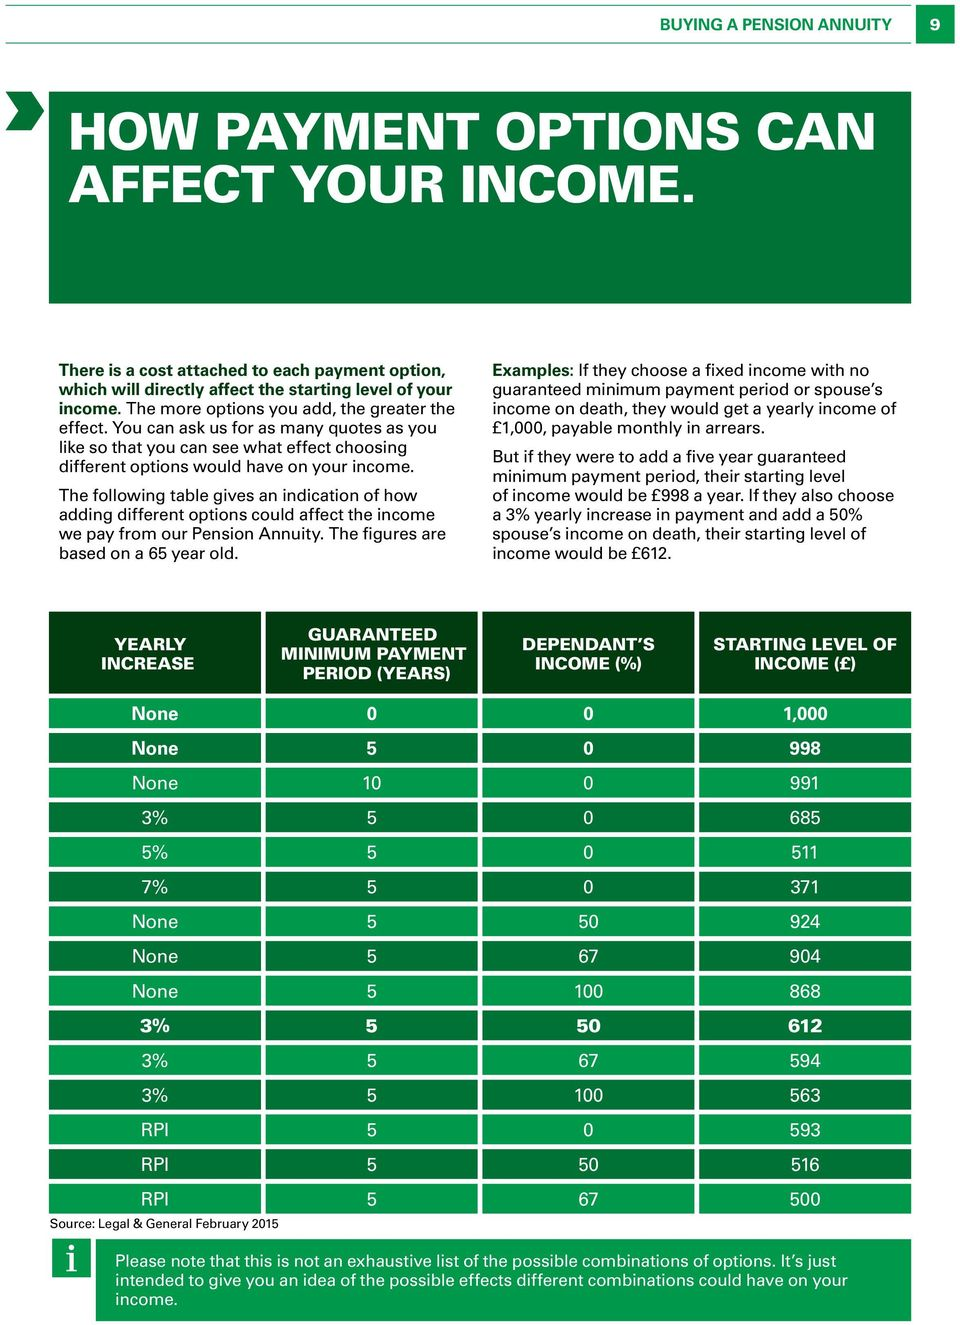 The following table gives an indication of how adding different options could affect the income we pay from our Pension Annuity. The figures are based on a 65 year old.